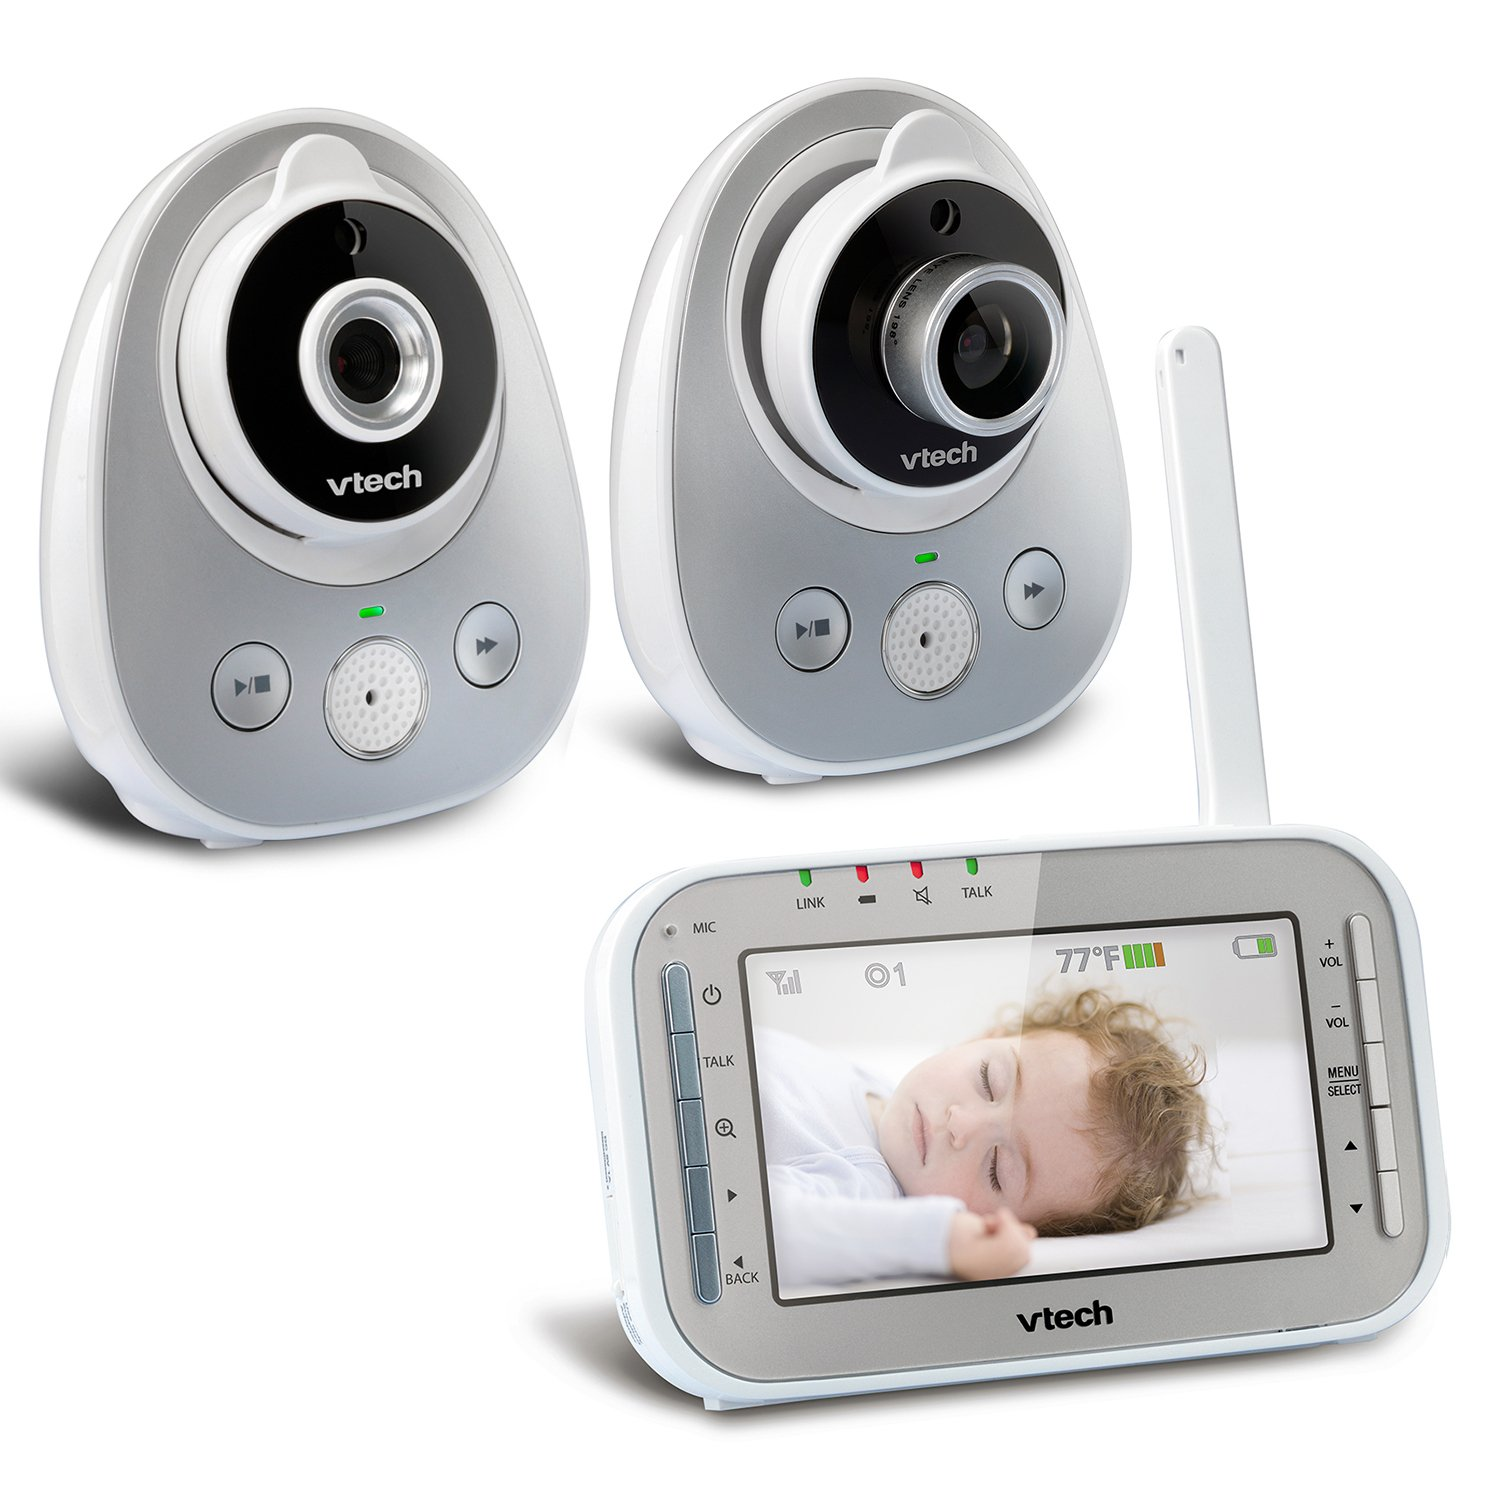 3e884b6adc3 Amazon.com   VTech VM342-2 Video Baby Monitor with 170-Degree Wide-Angle  Lens for Panoramic View